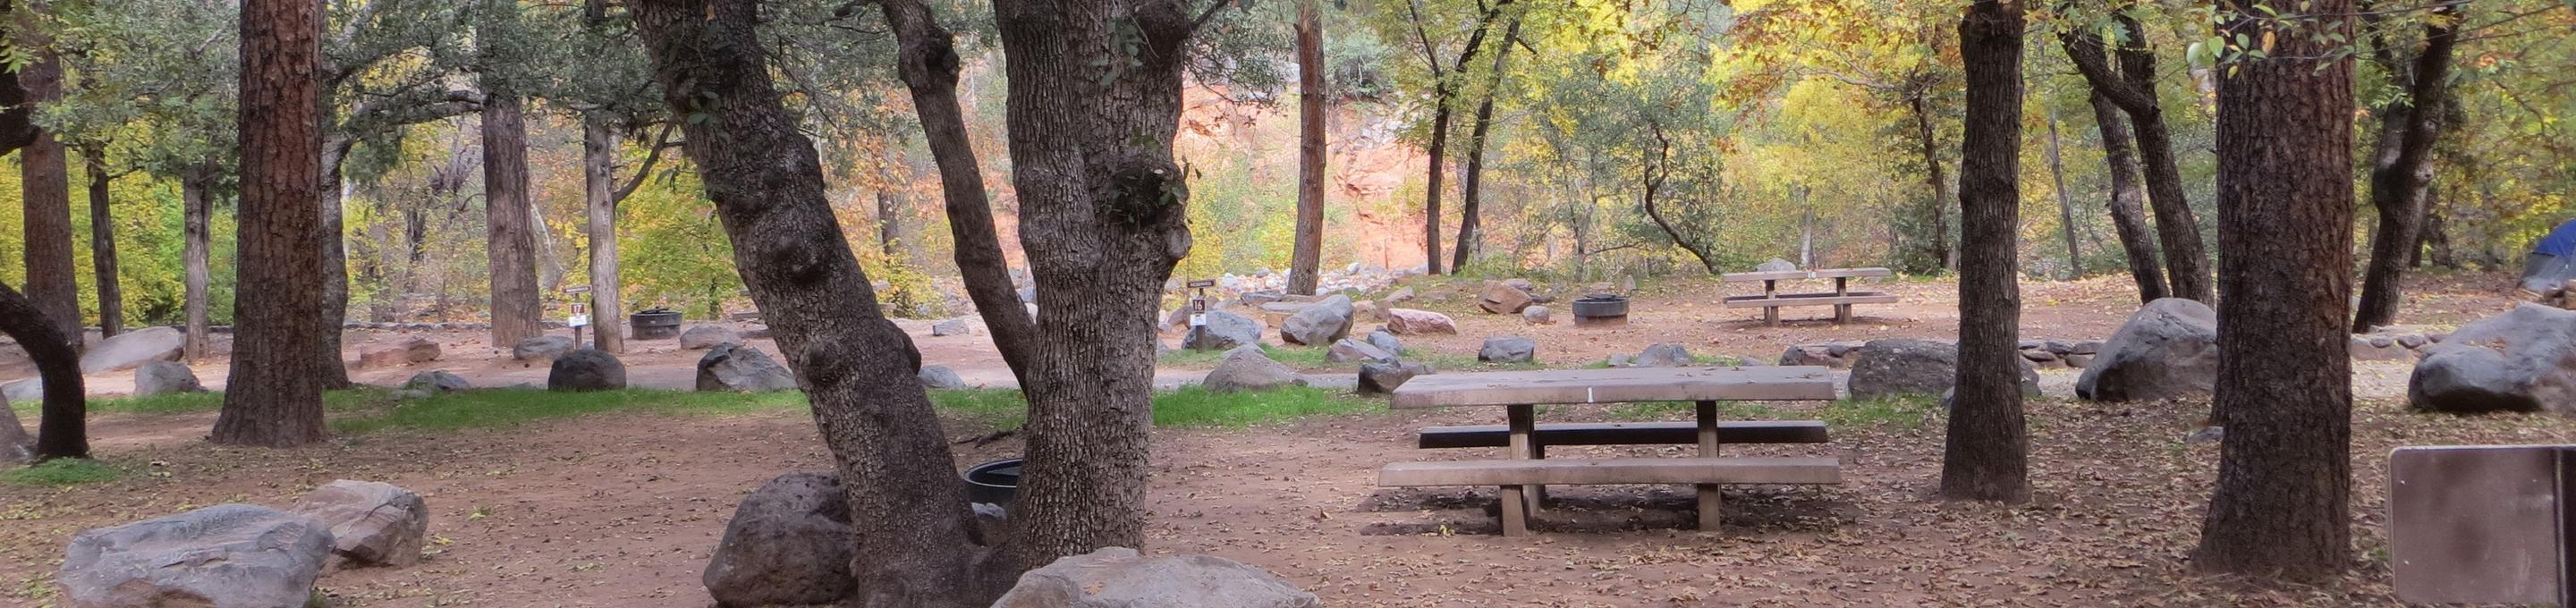 Manzanita Campground site #01 featuring the treed picnic area and fire pit.